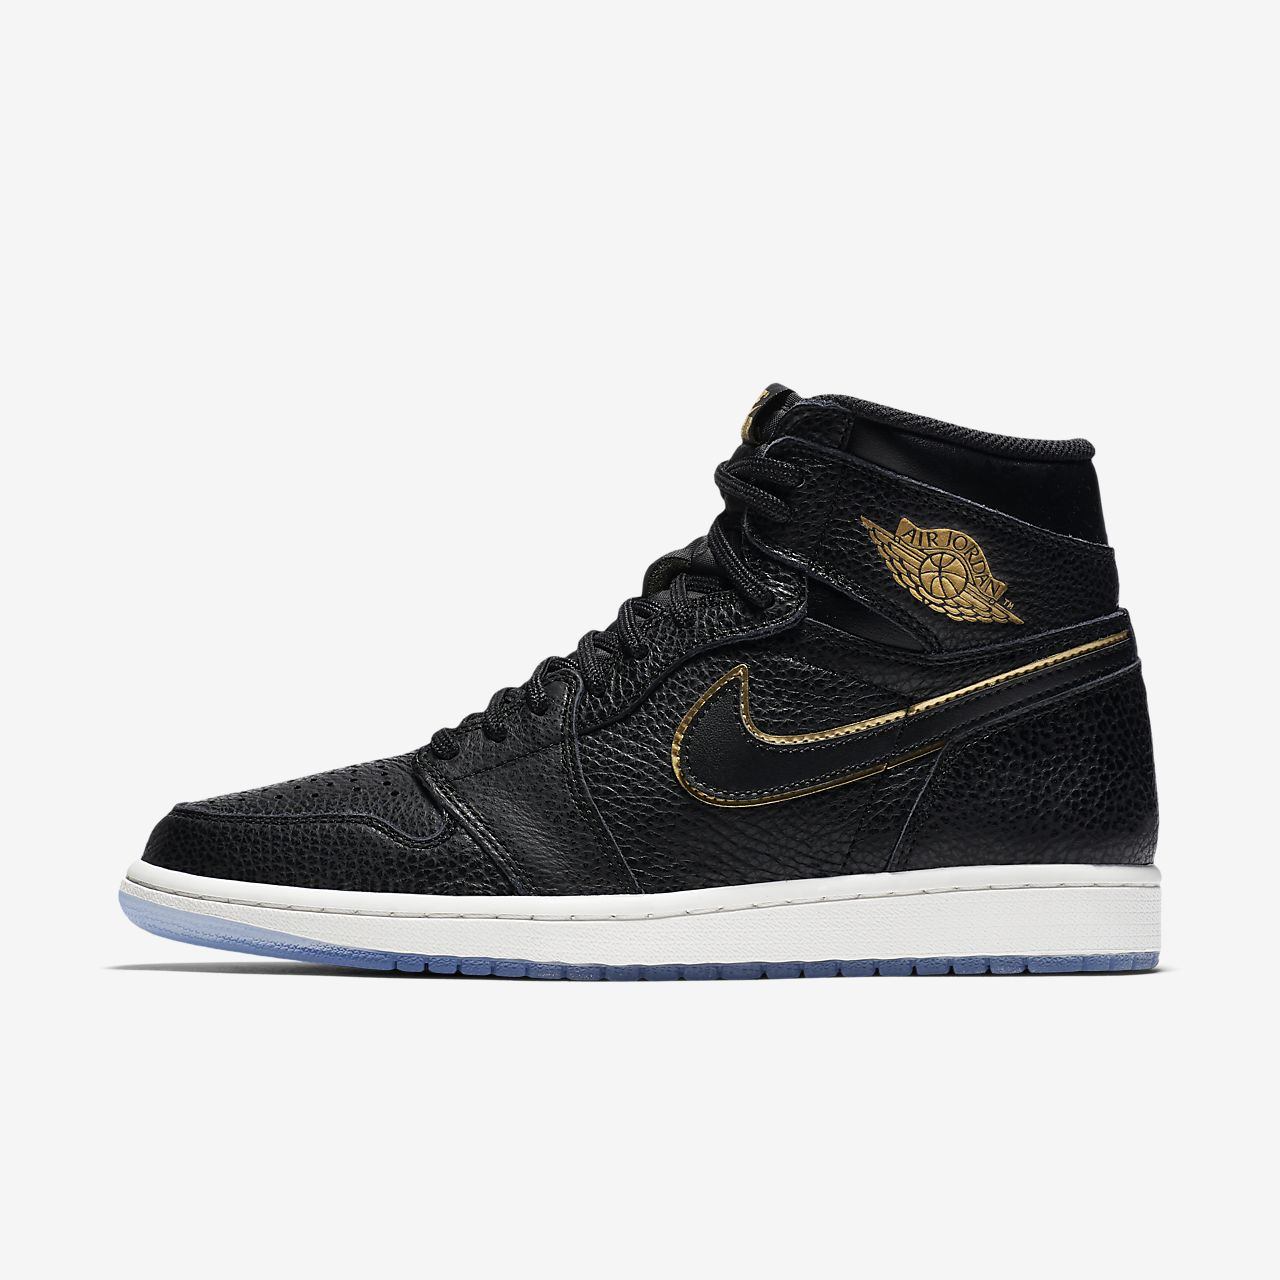 681a283c88e91c Air Jordan 1 Retro High OG Shoe. Nike.com VN